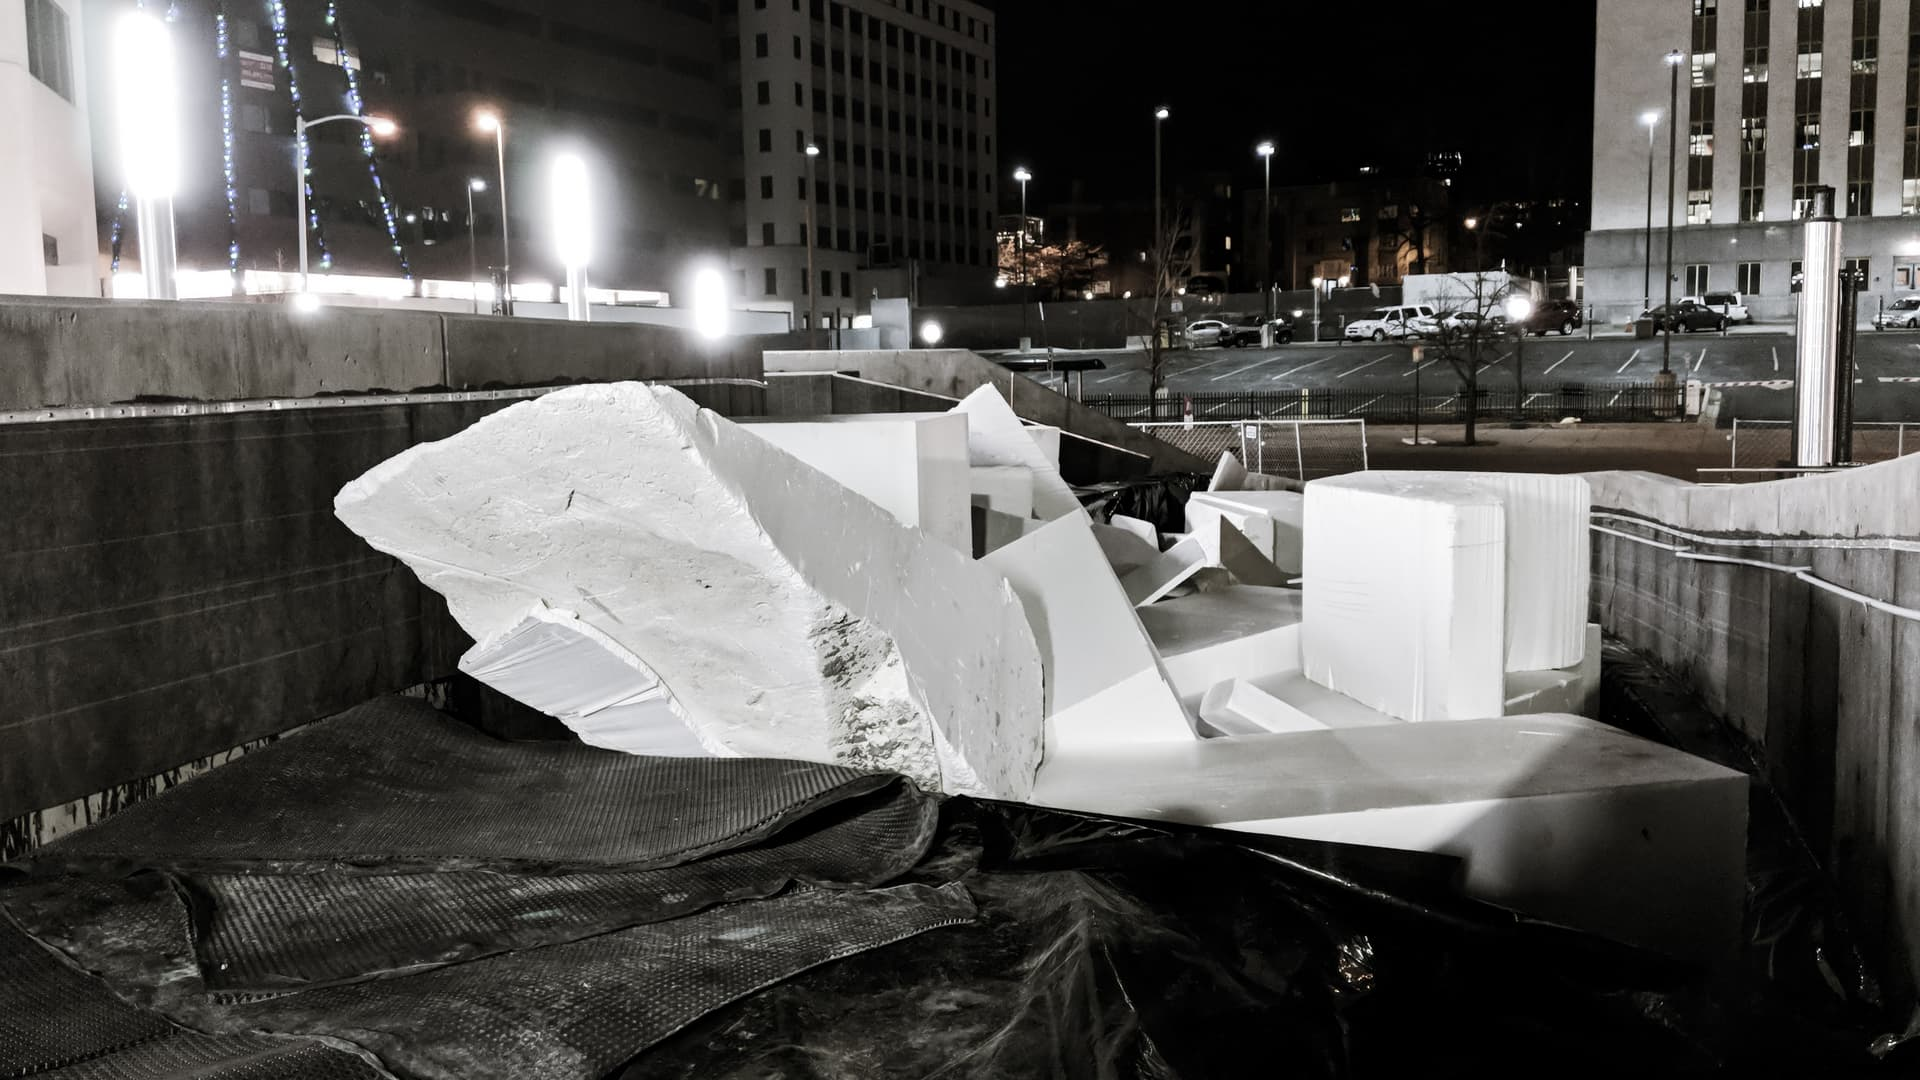 A picture of a debris pile near a construction site at night. Car-sized pieces of styrofoam, almost crystalline in appearance, dominate the center of the frame.